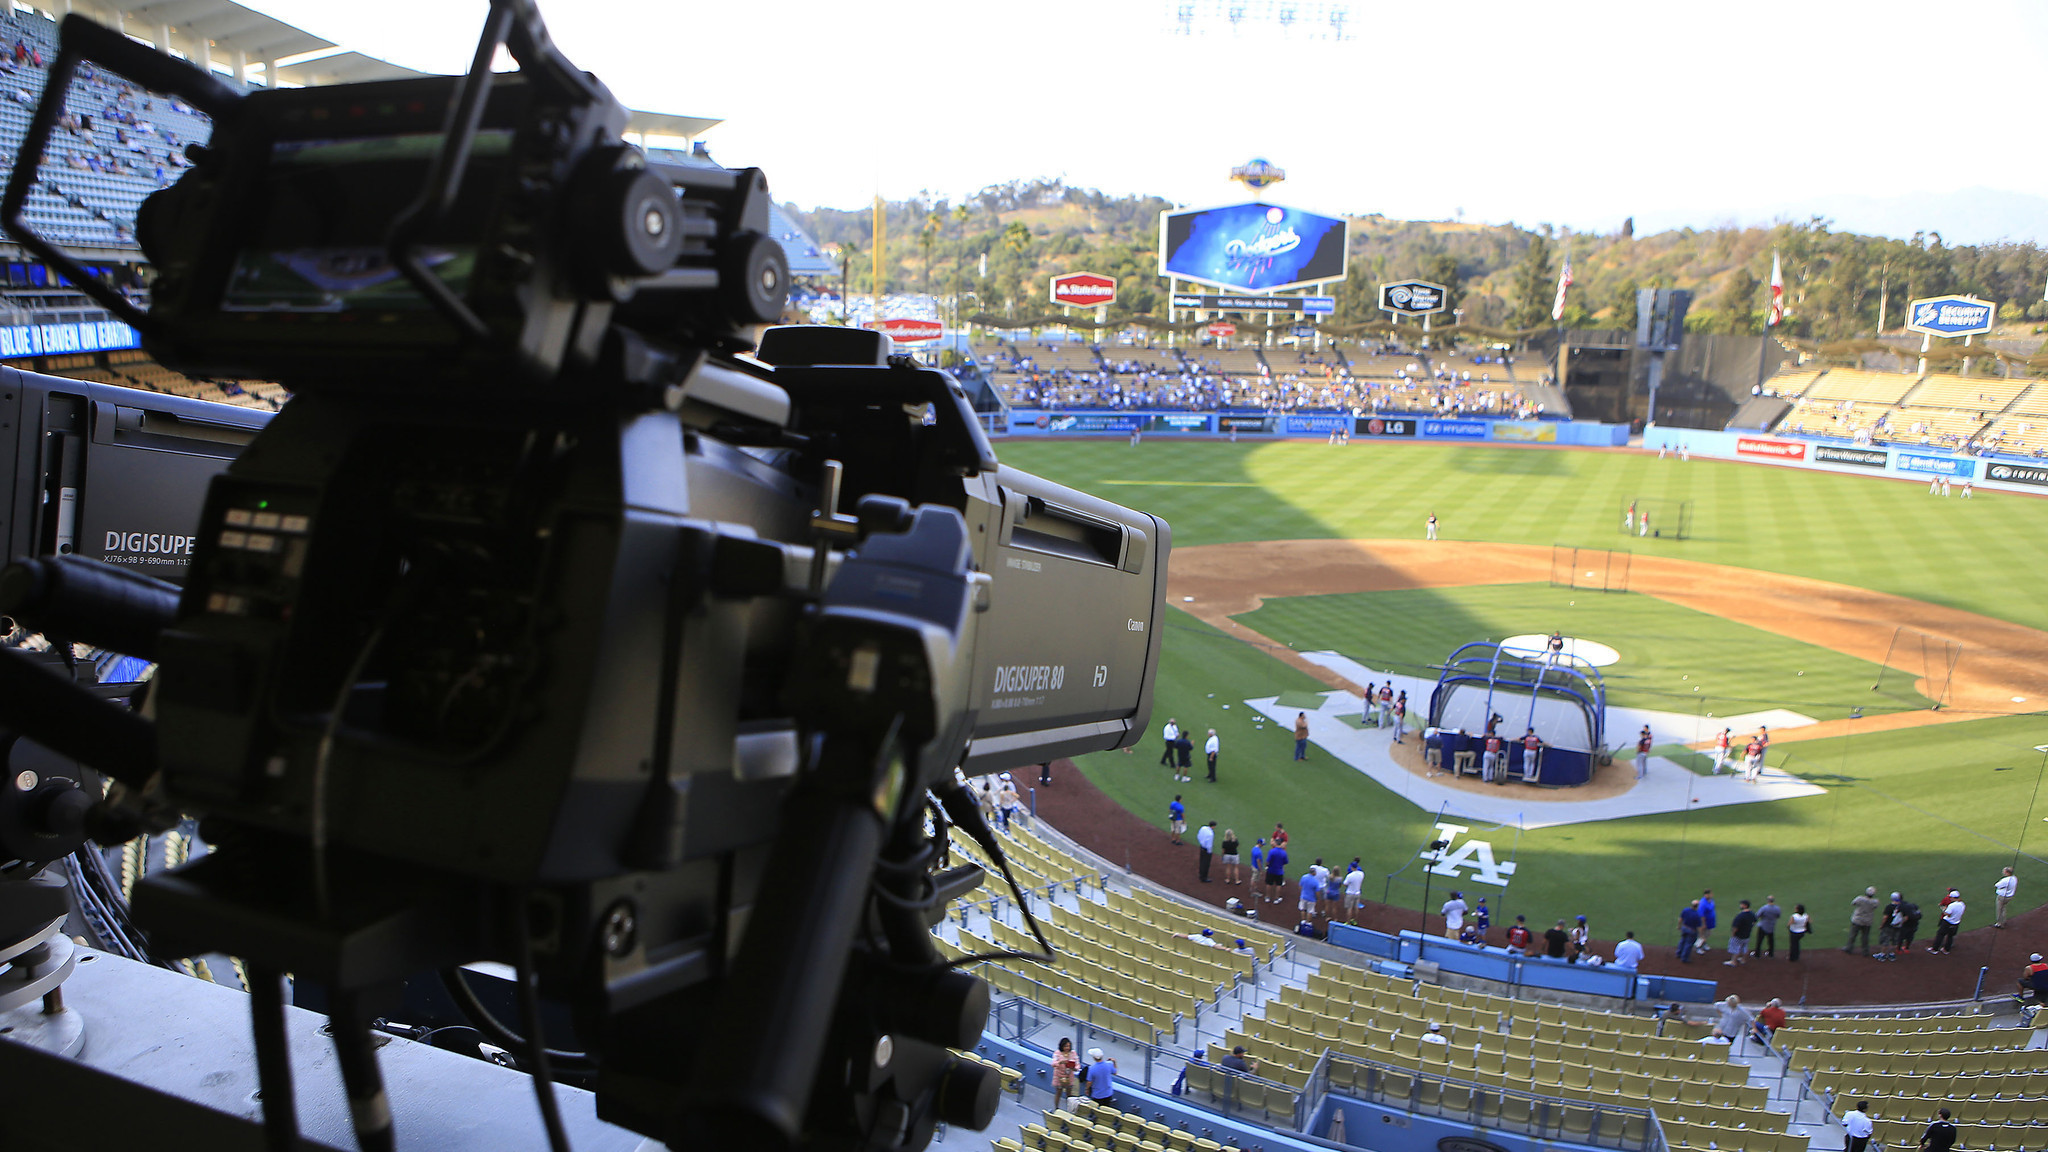 Magic Johnson is right about TV issue not hurting Dodgers brand